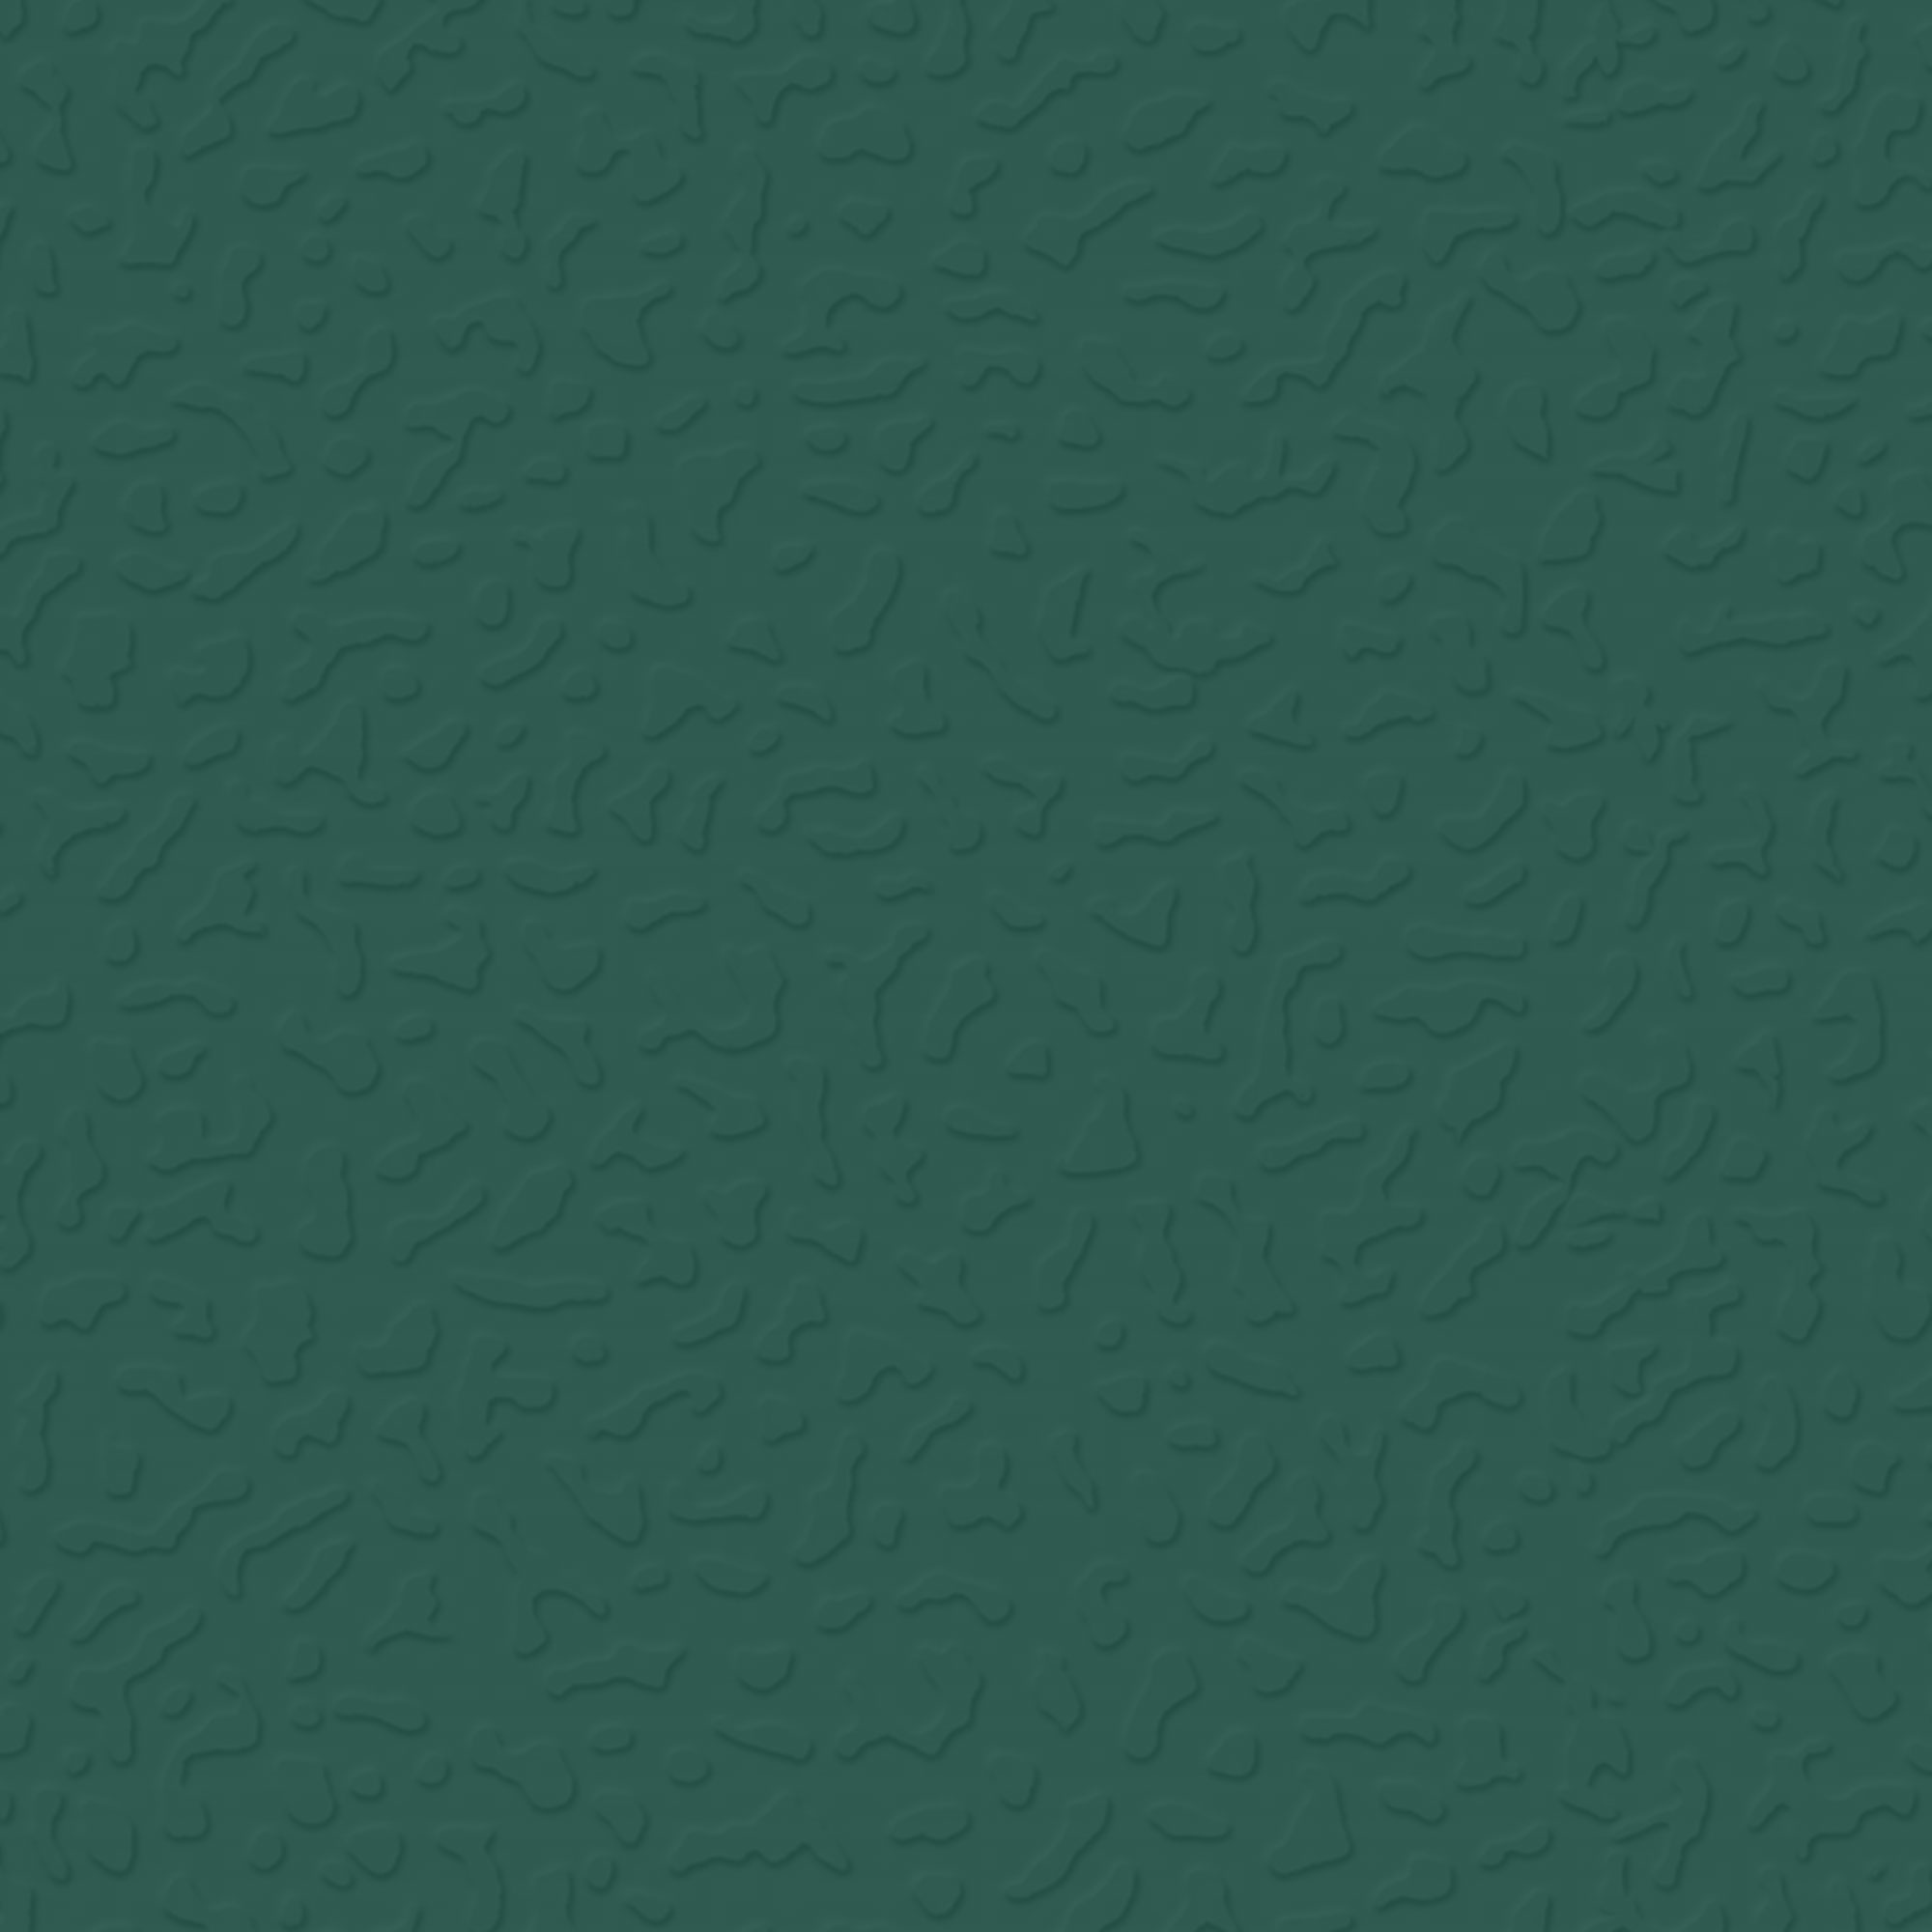 Roppe Rubber Tile 900 - Textured Design (993) Forest Green LB996160